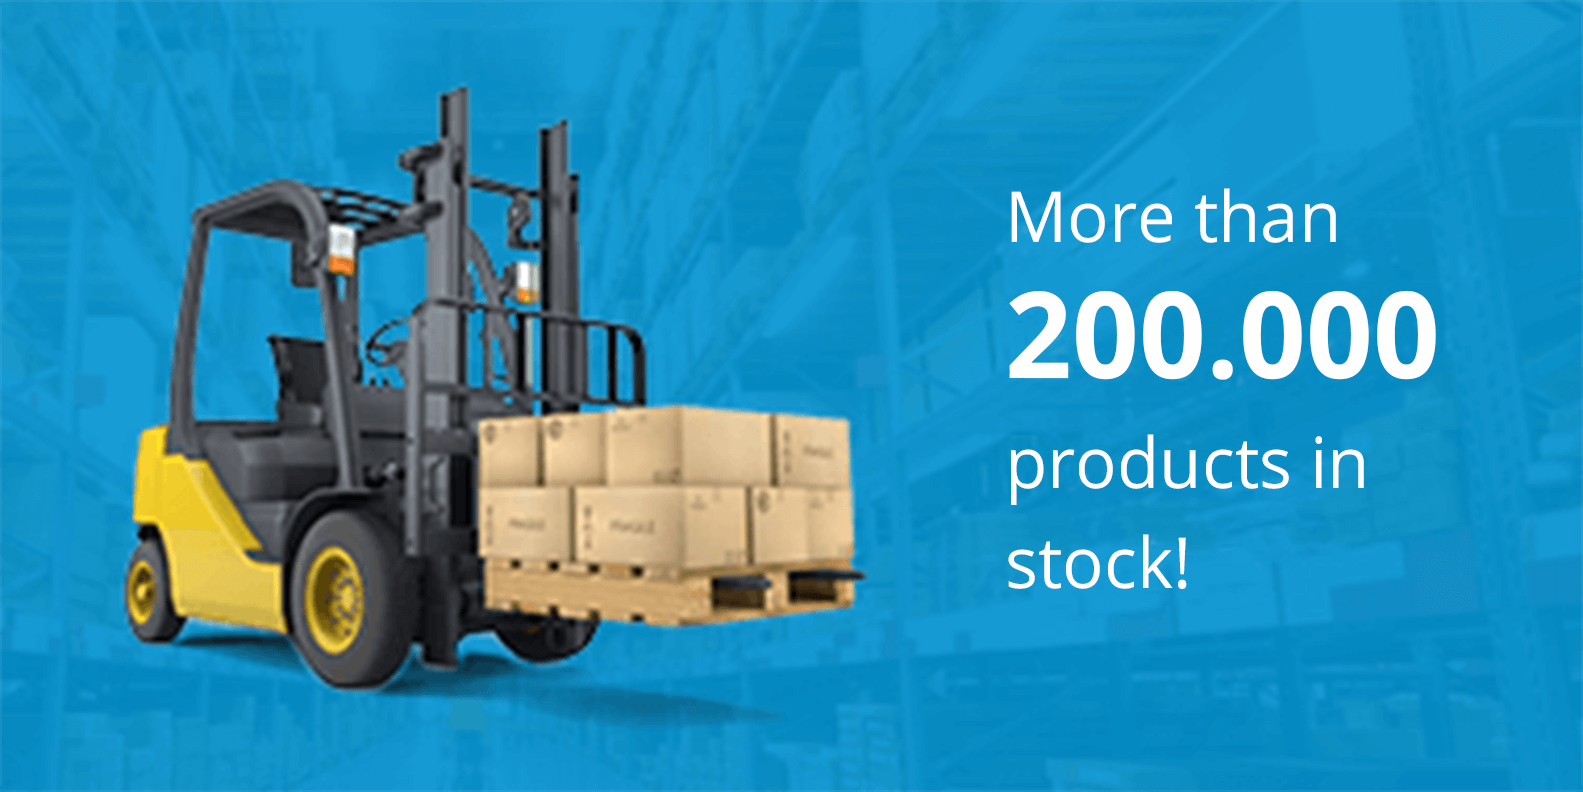 More than 200.000 products in stocks